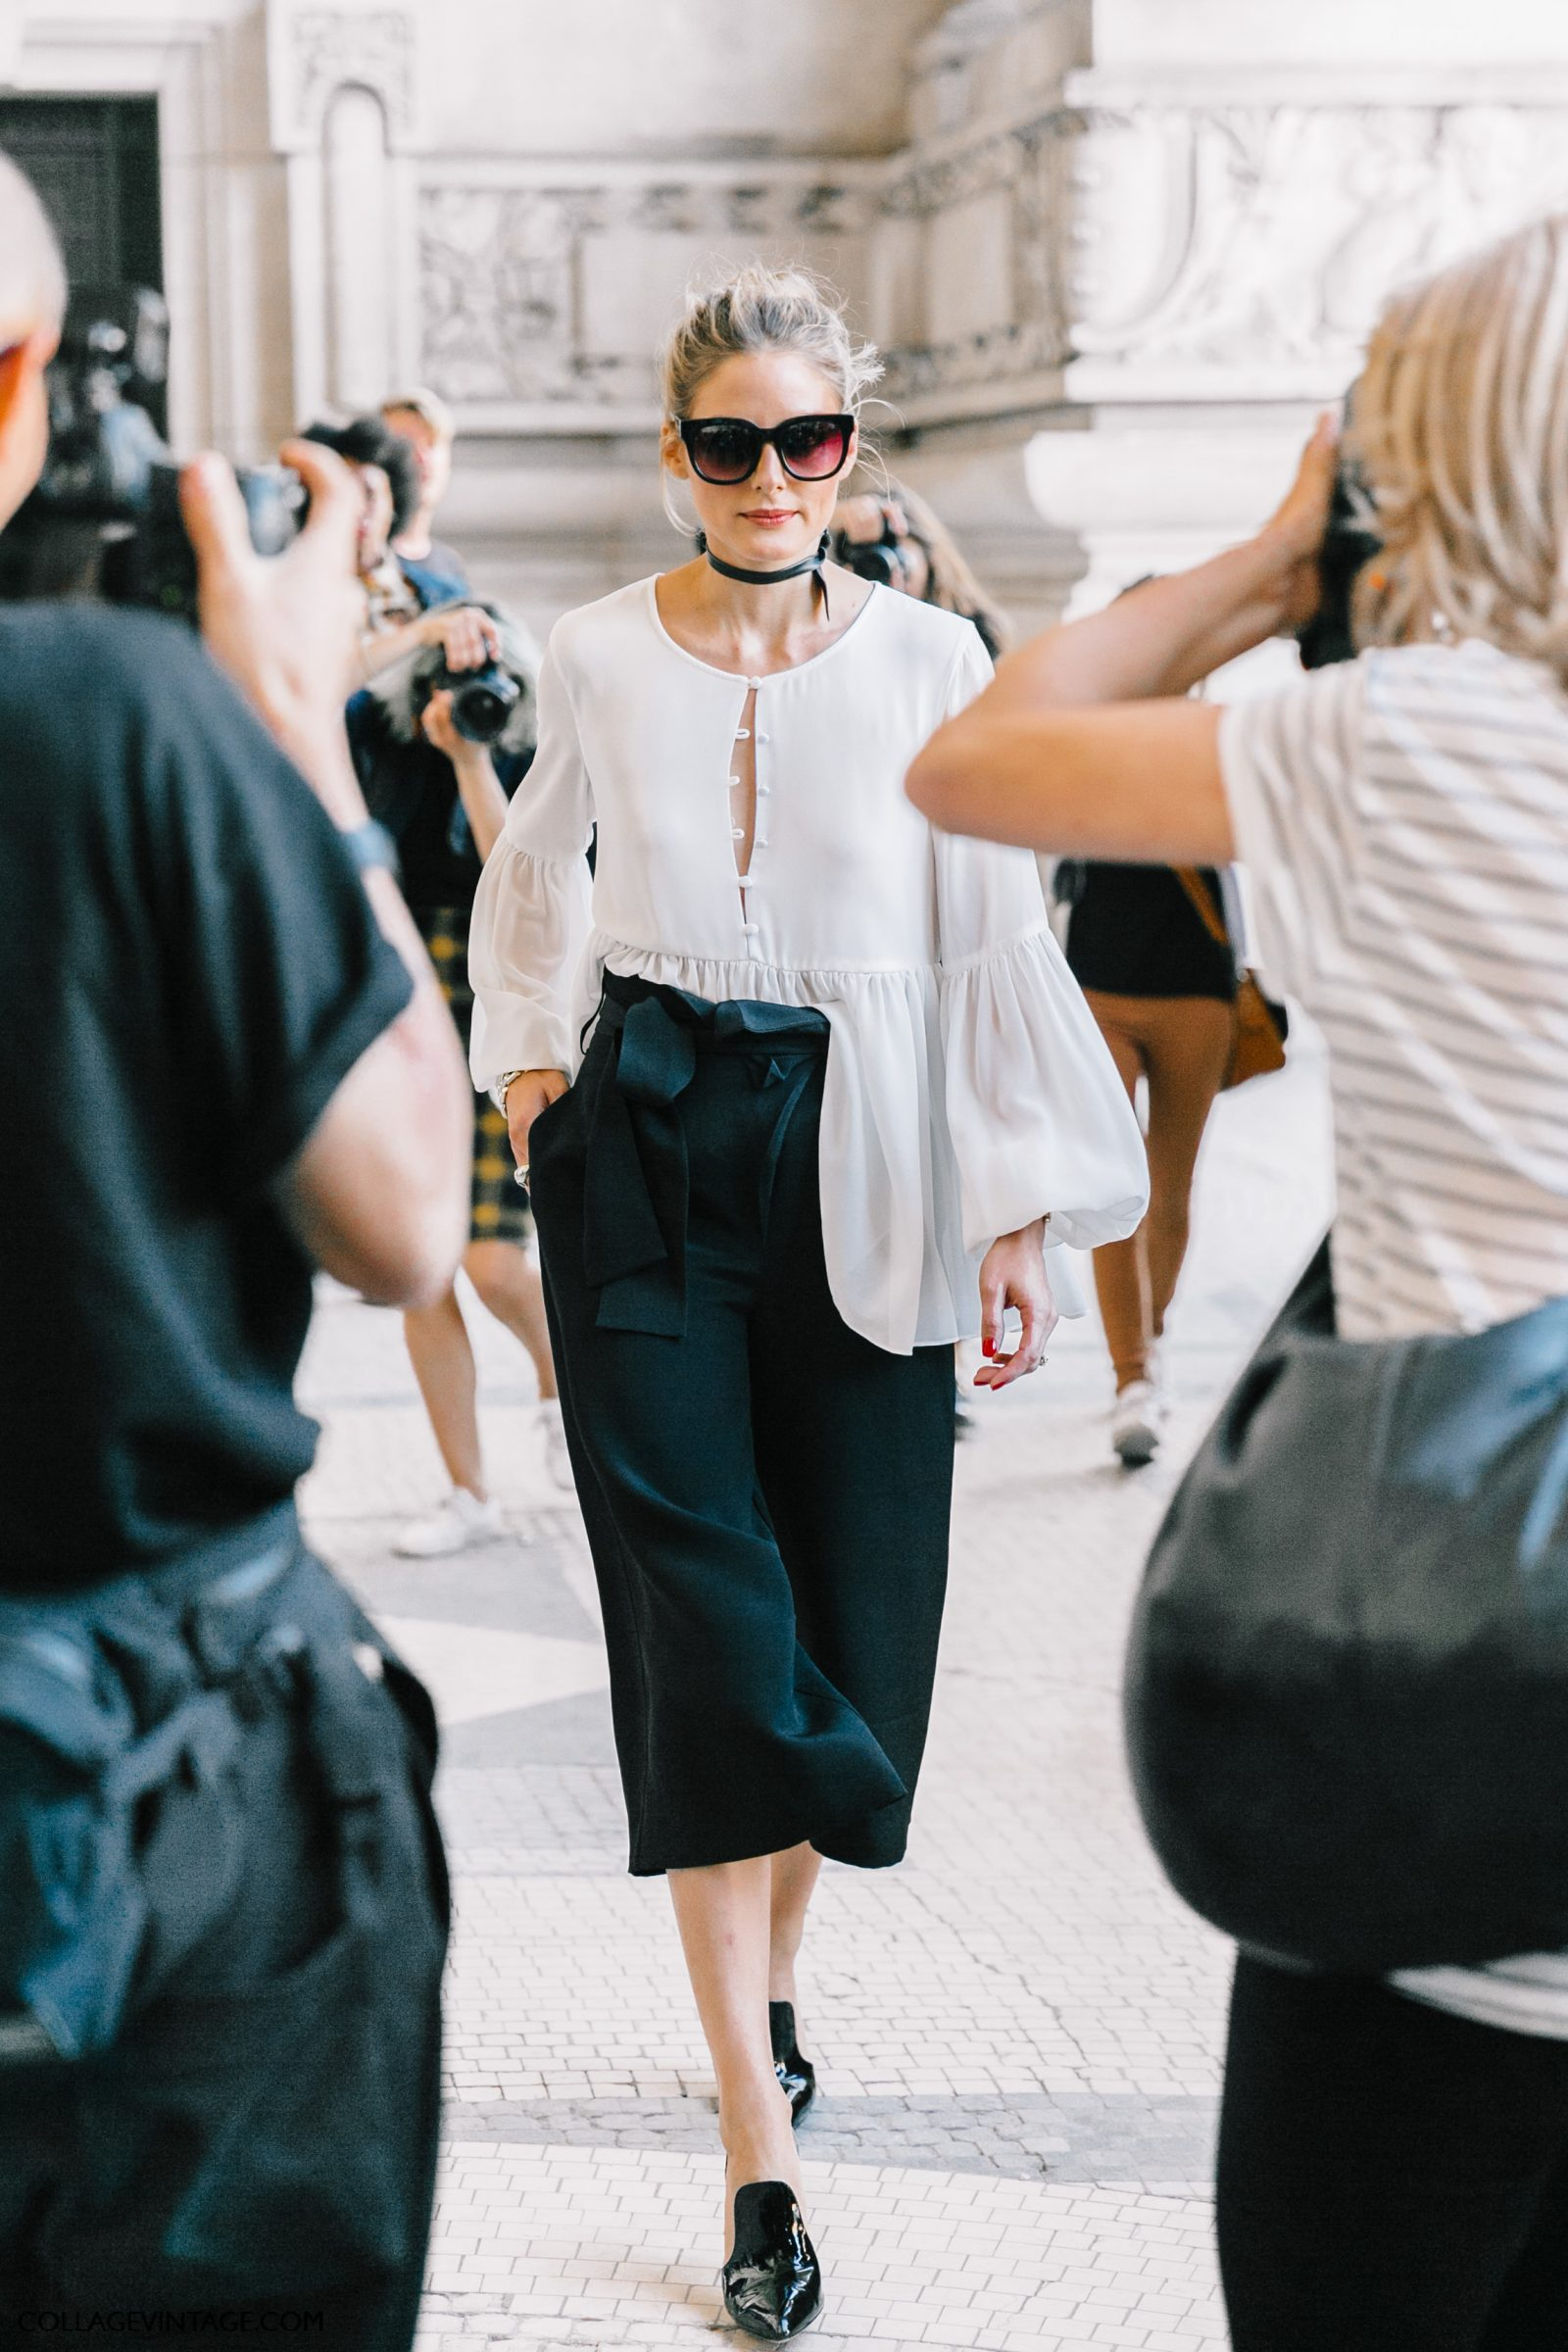 pfw-paris_fashion_week_ss17-street_style-outfits-collage_vintage-chloe-carven-balmain-barbara_bui-200